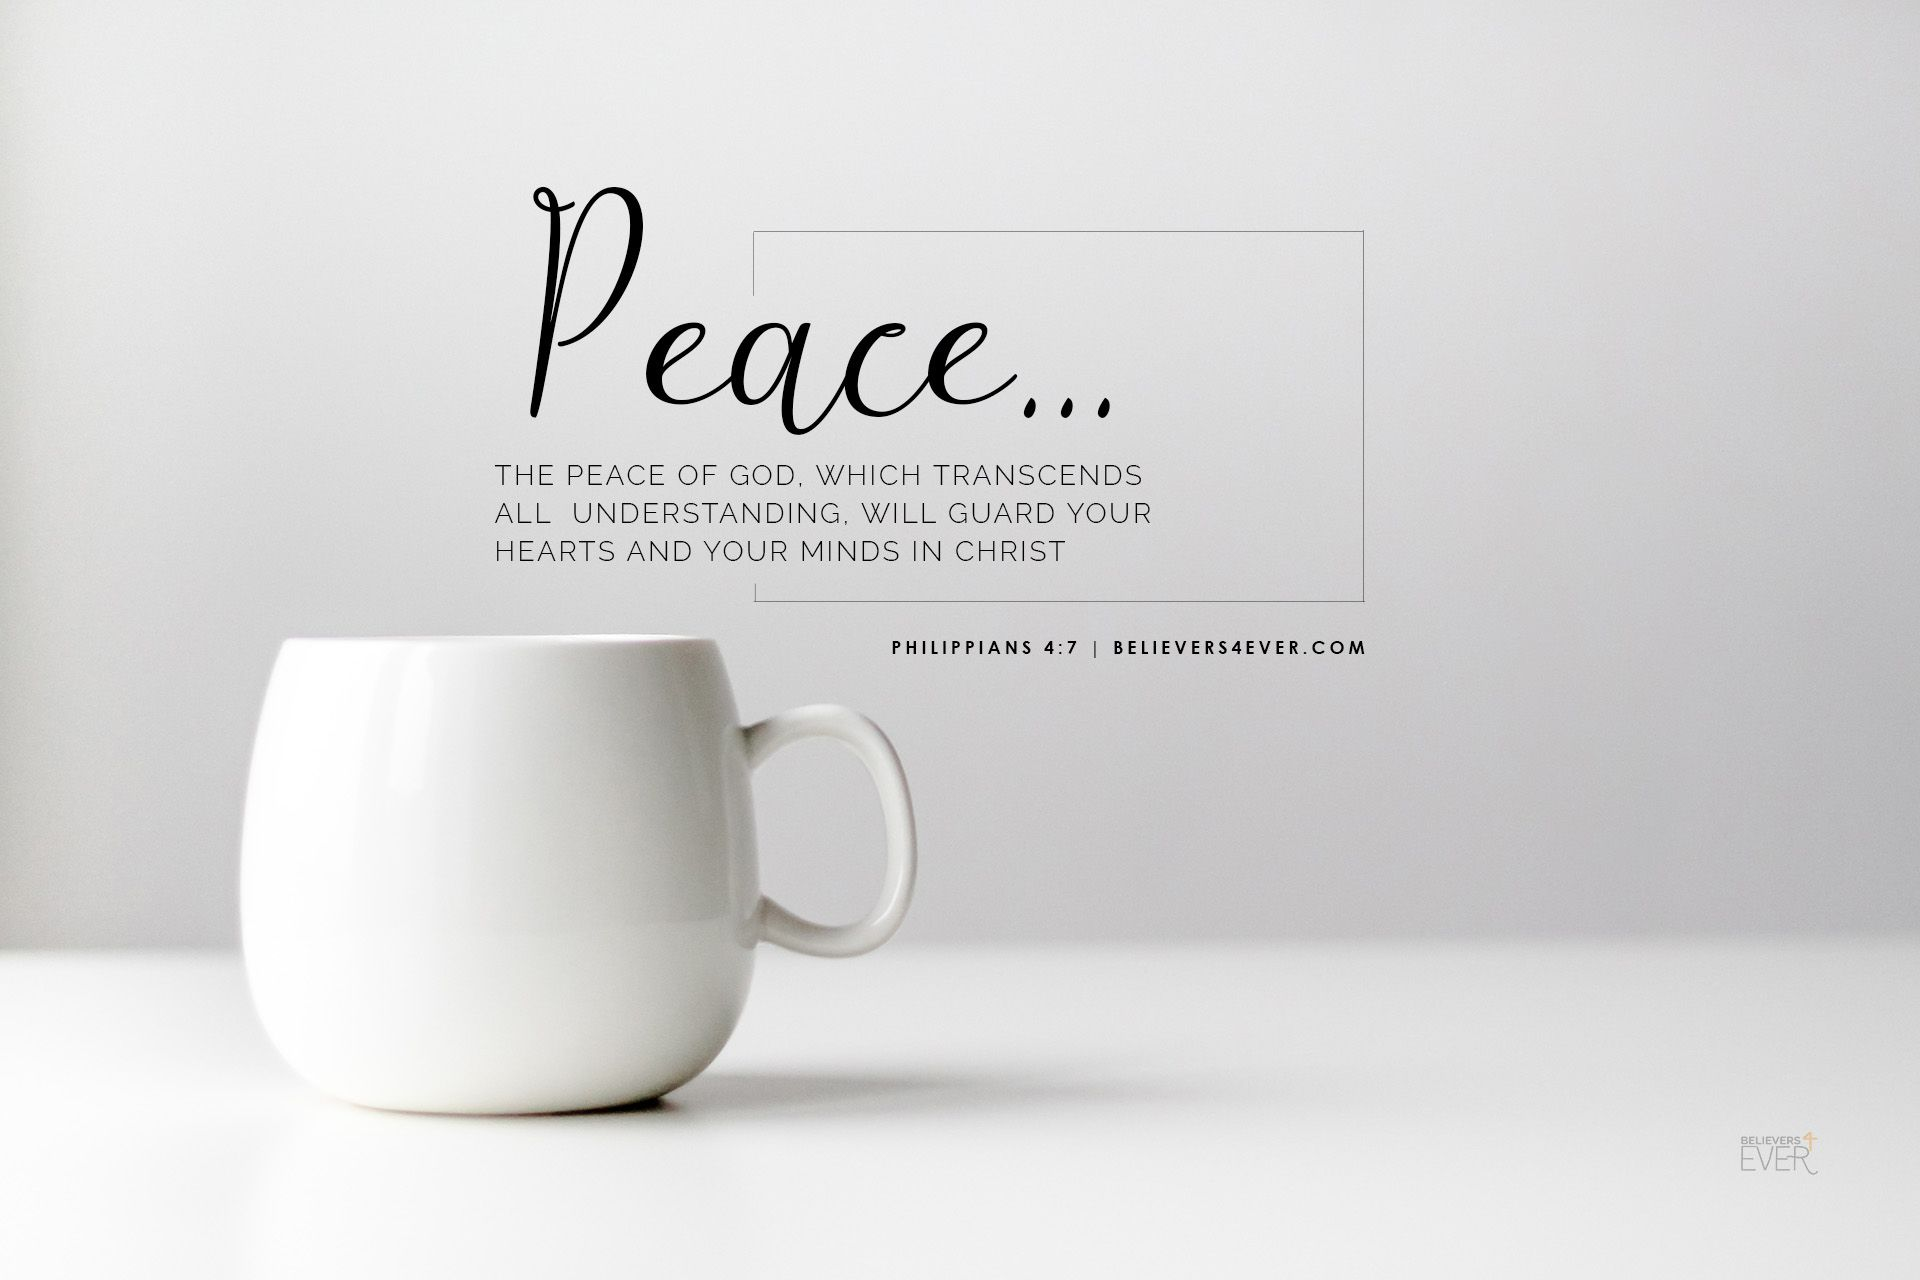 Peace Which Transcends Wallpaper Believers4ever Com Free Christian Wallpaper Christian Wallpaper Free Christian